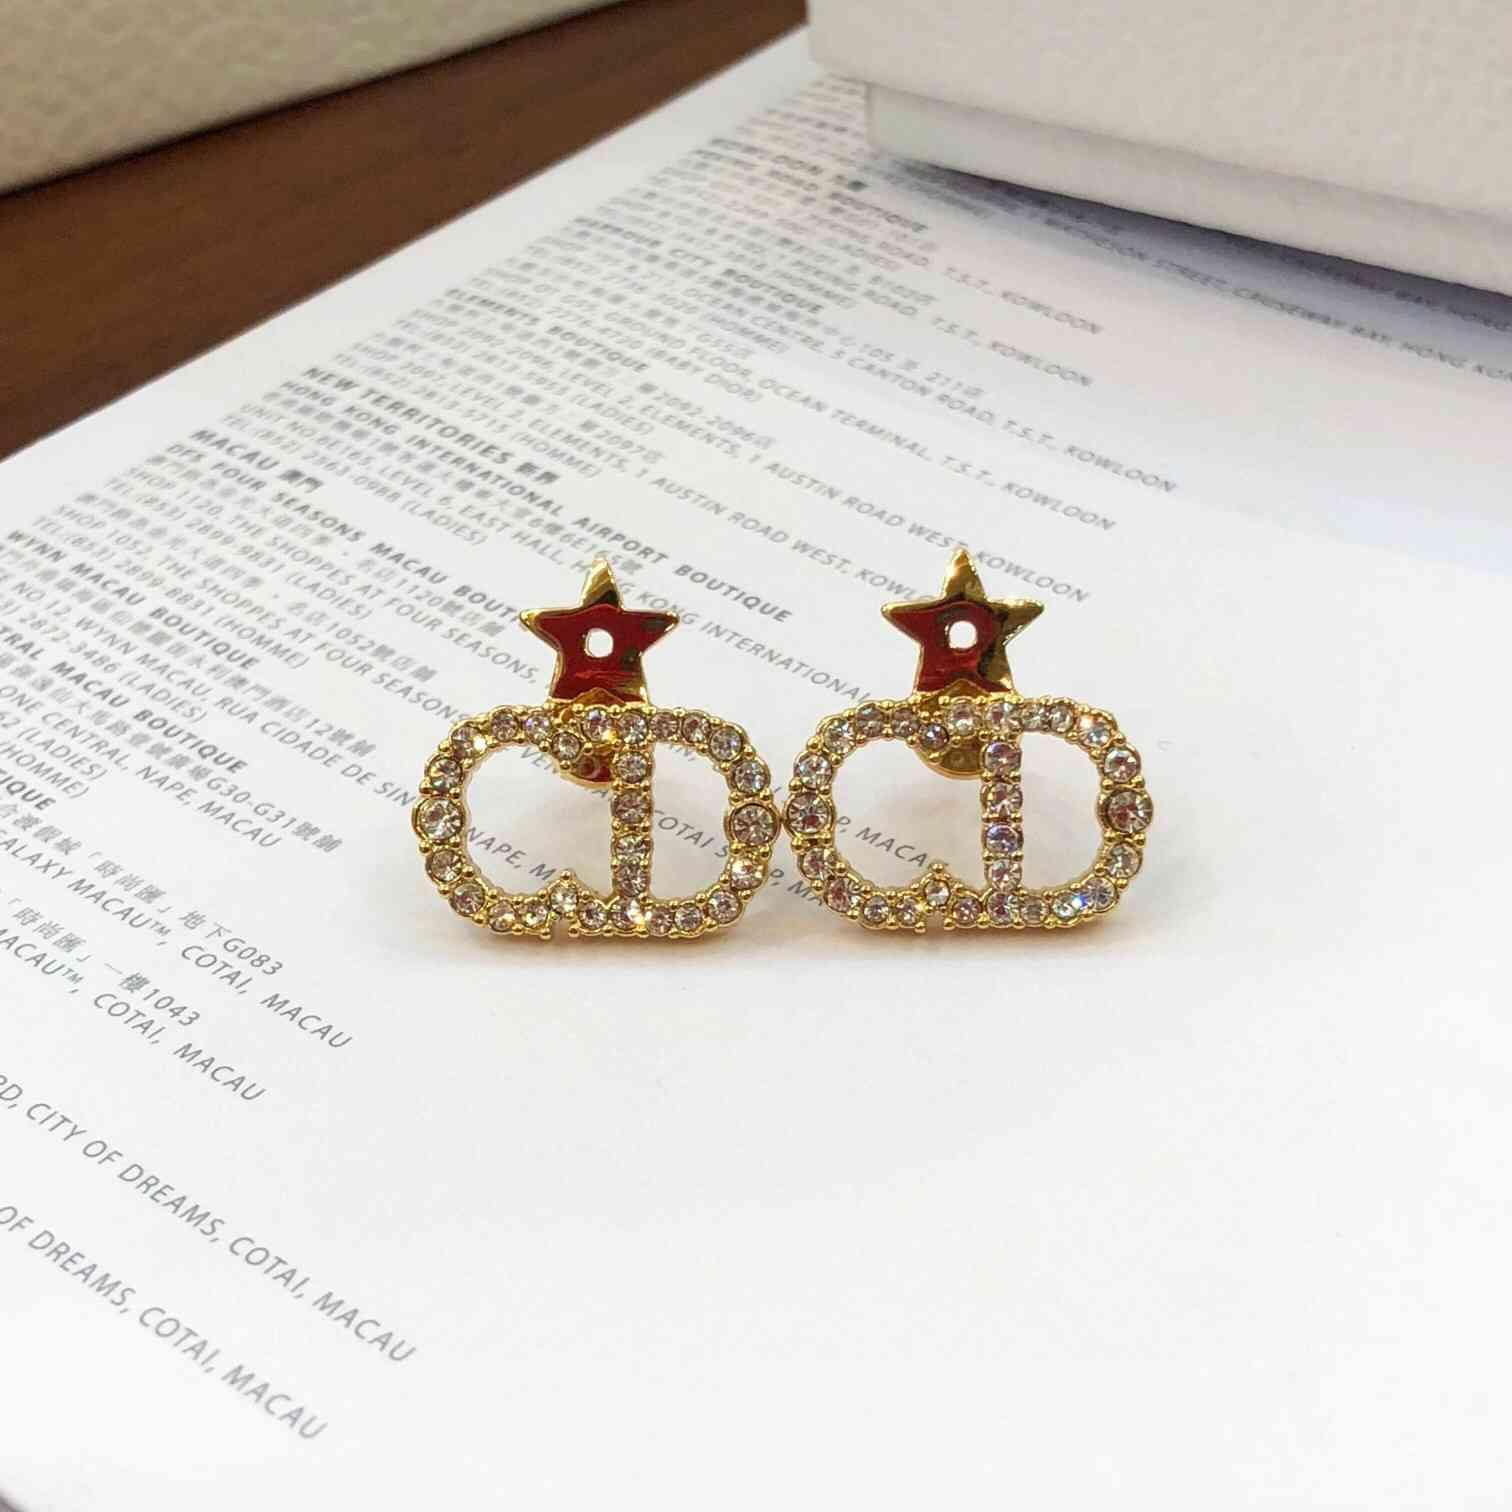 AAA Designer Jewelry jiadijia's new 925 silver needle letter full earrings high version temperament five pointed star Earrings